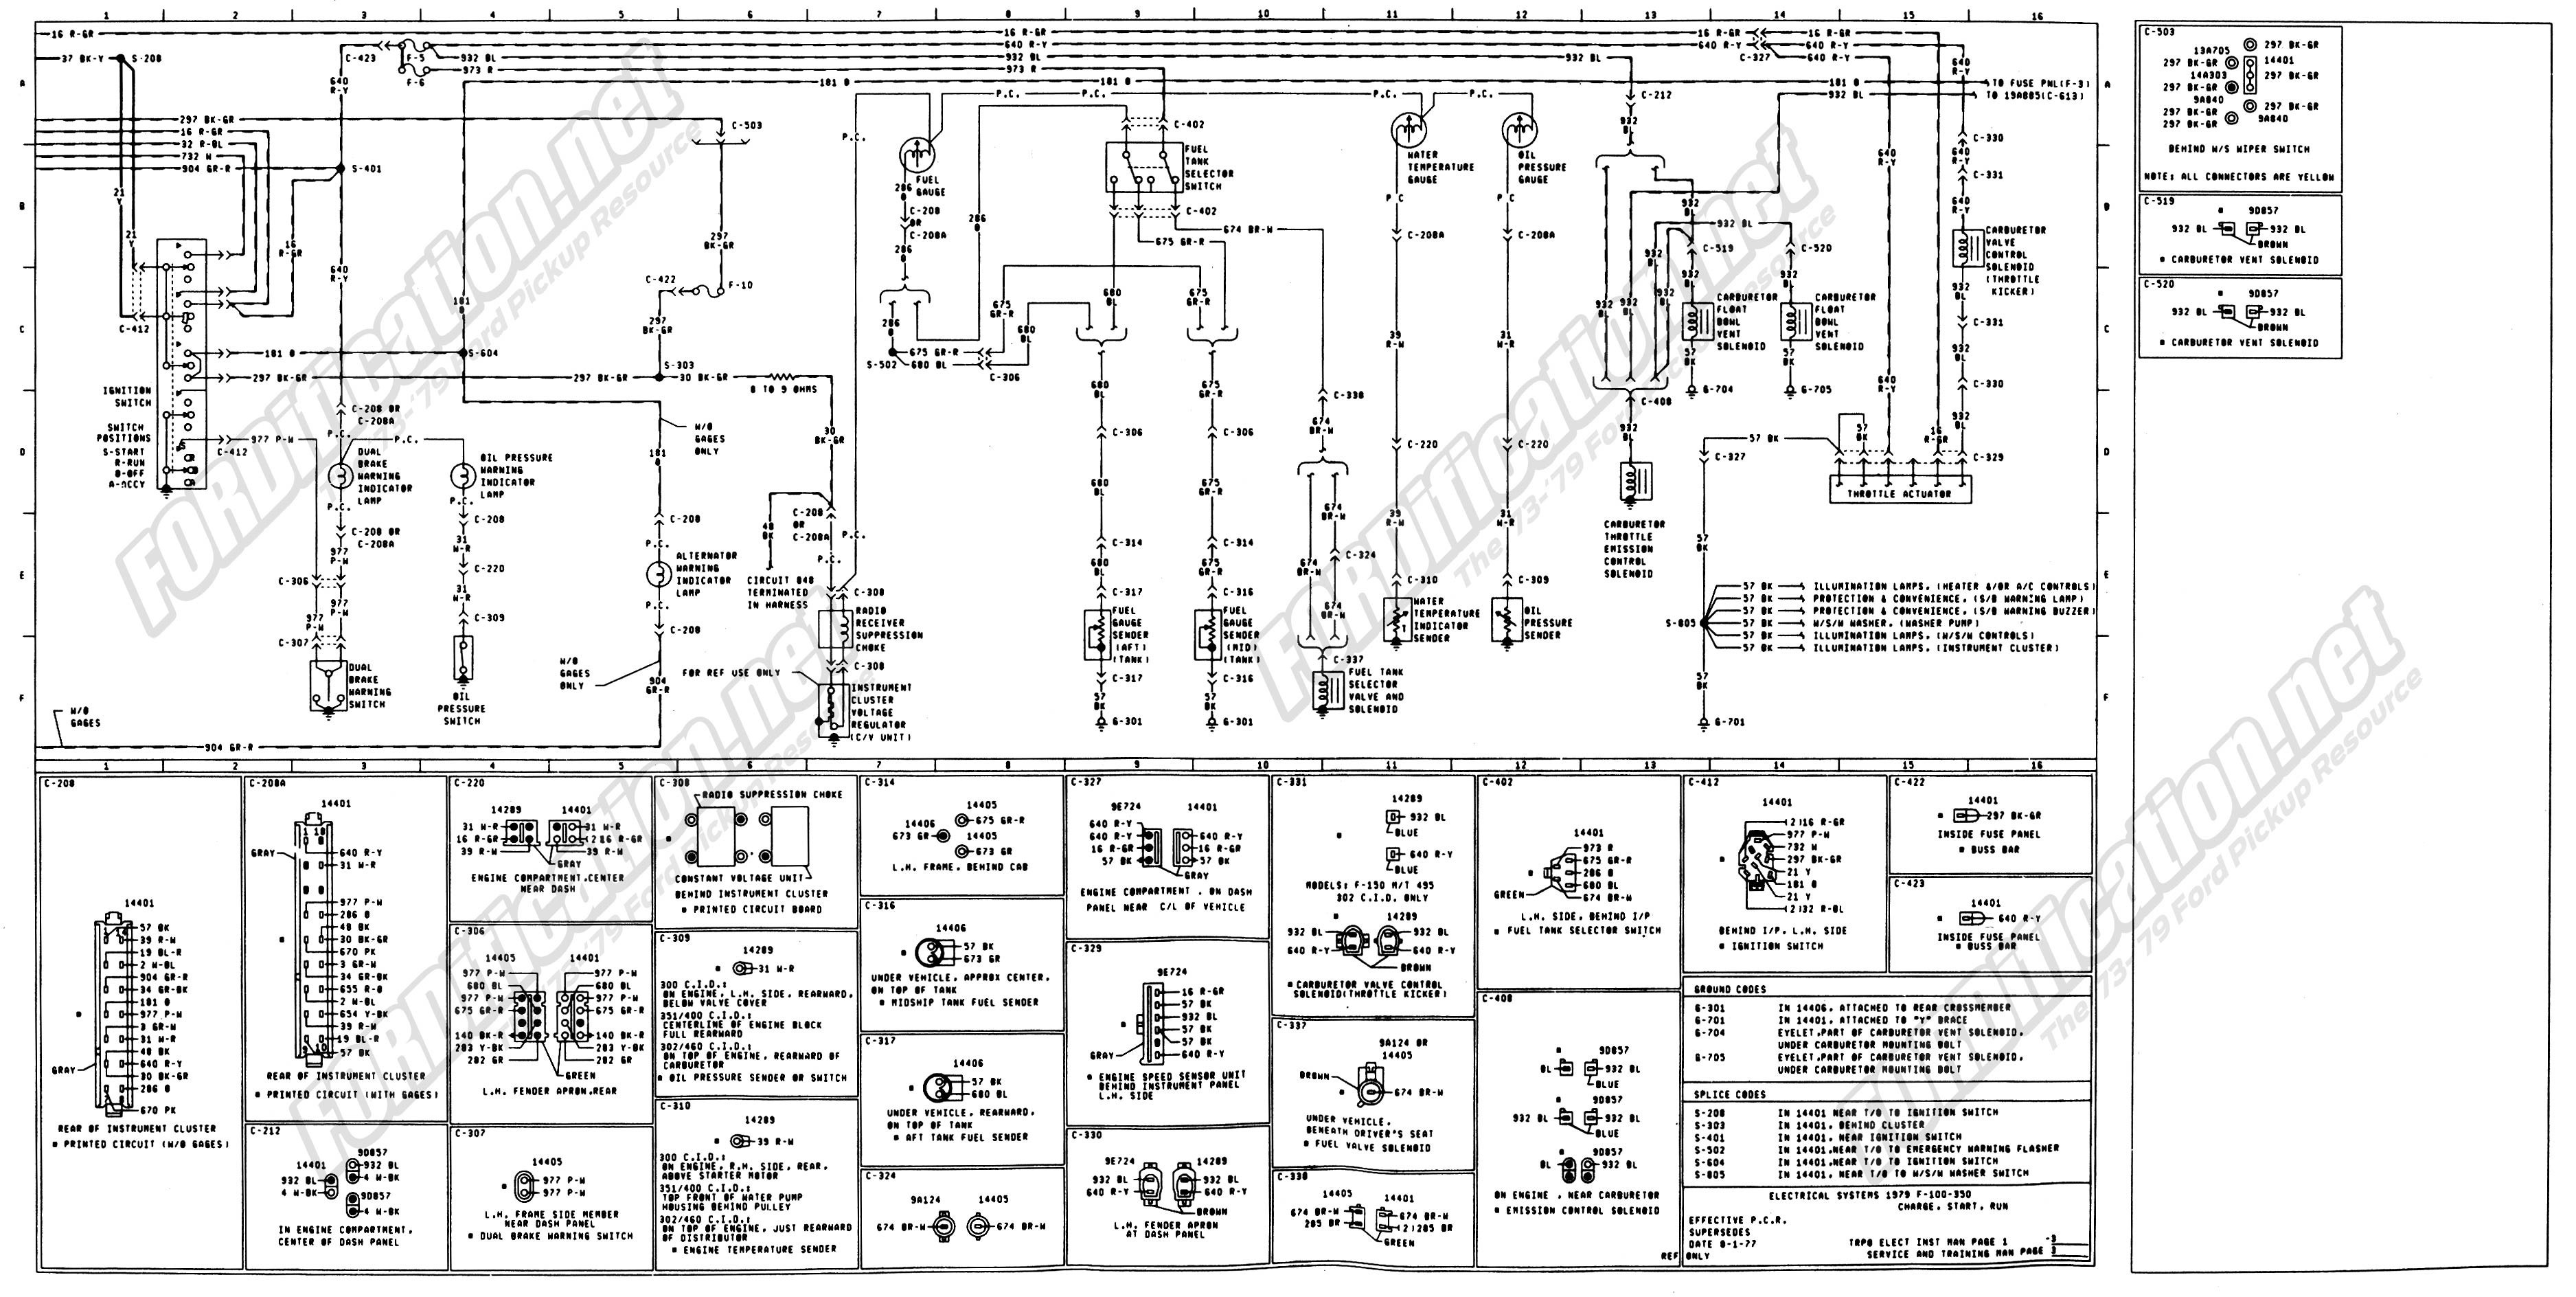 99 Malibu Spark Plug Wire Diagram